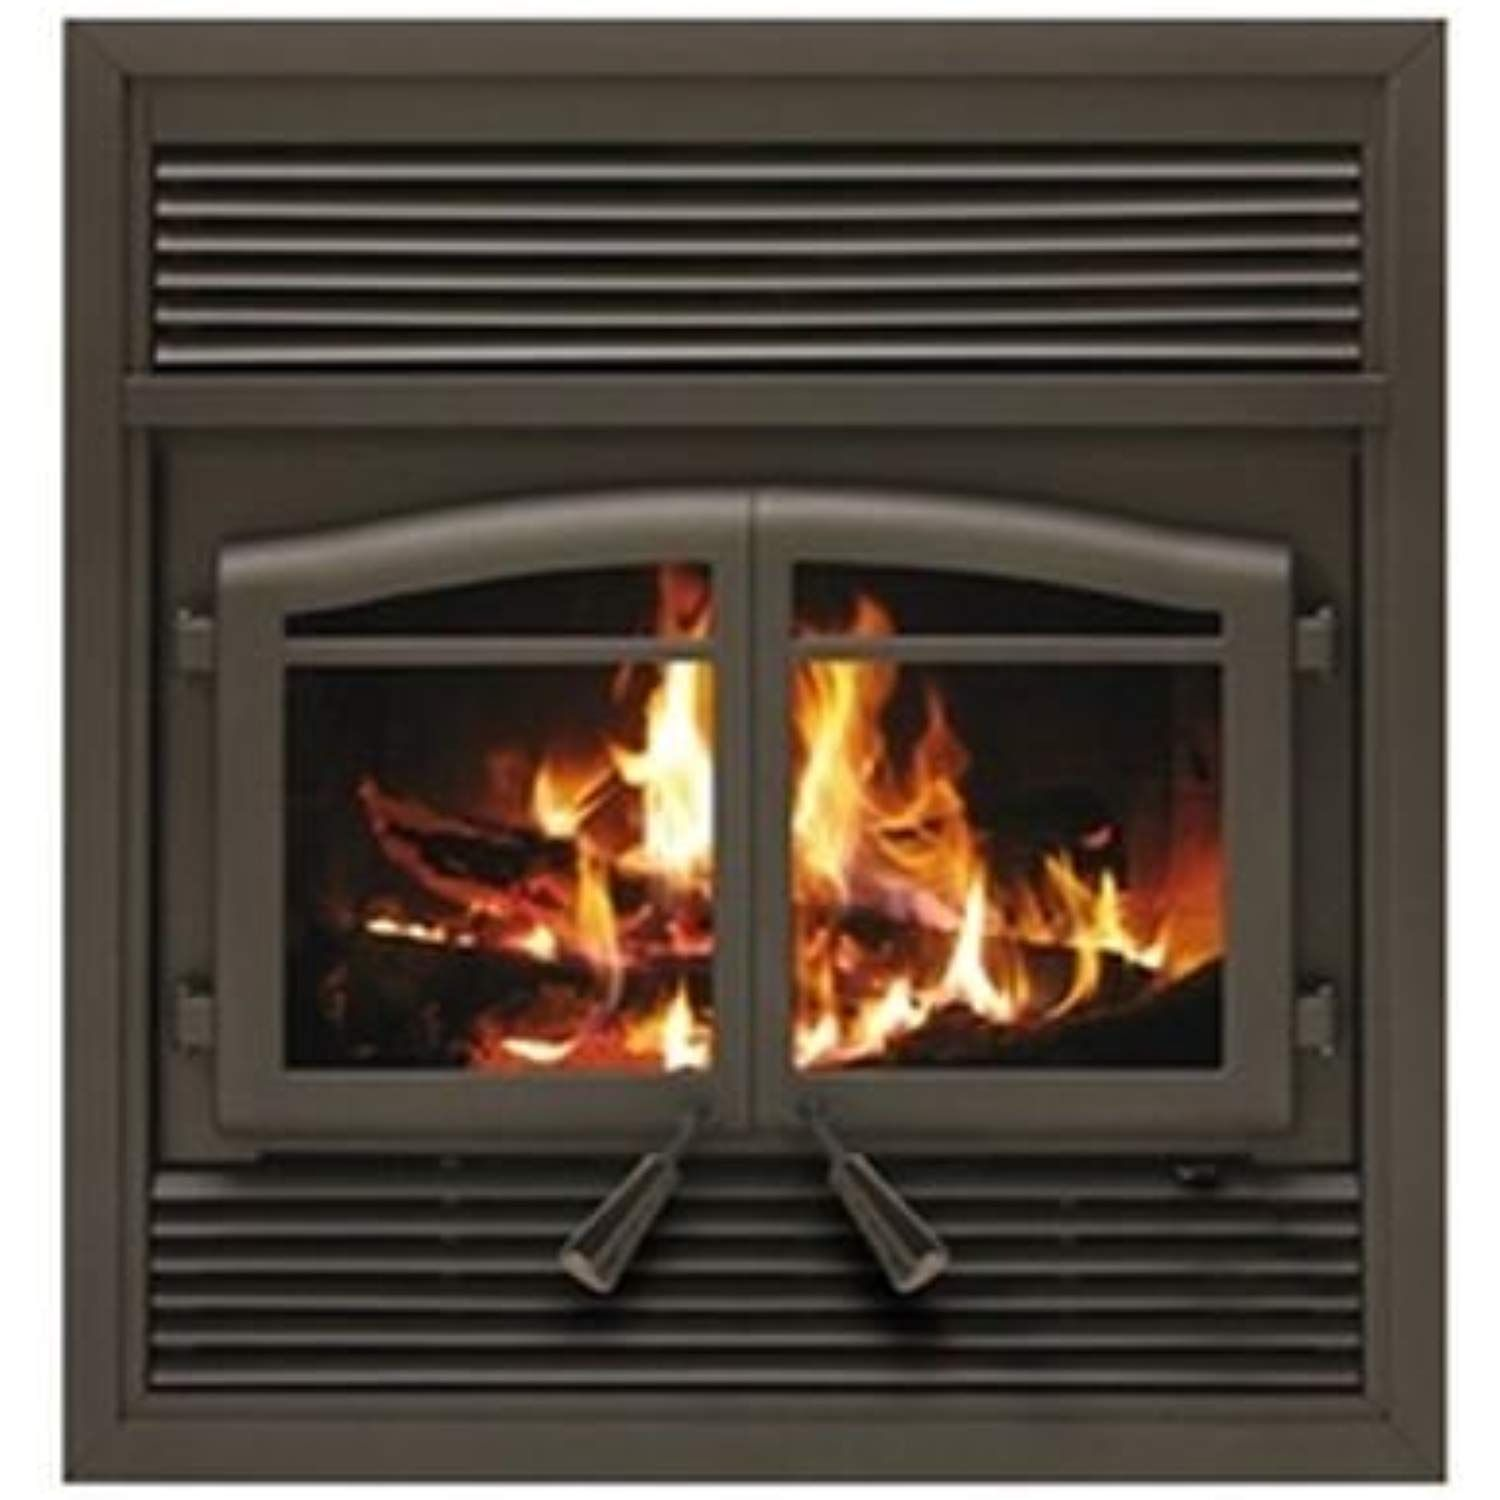 Copperfield Flame Monaco Epa Zc Fireplace With Black Louver Kit Click On The Image For Additional Zero Clearance Fireplace Wood Burning Fireplace Fireplace